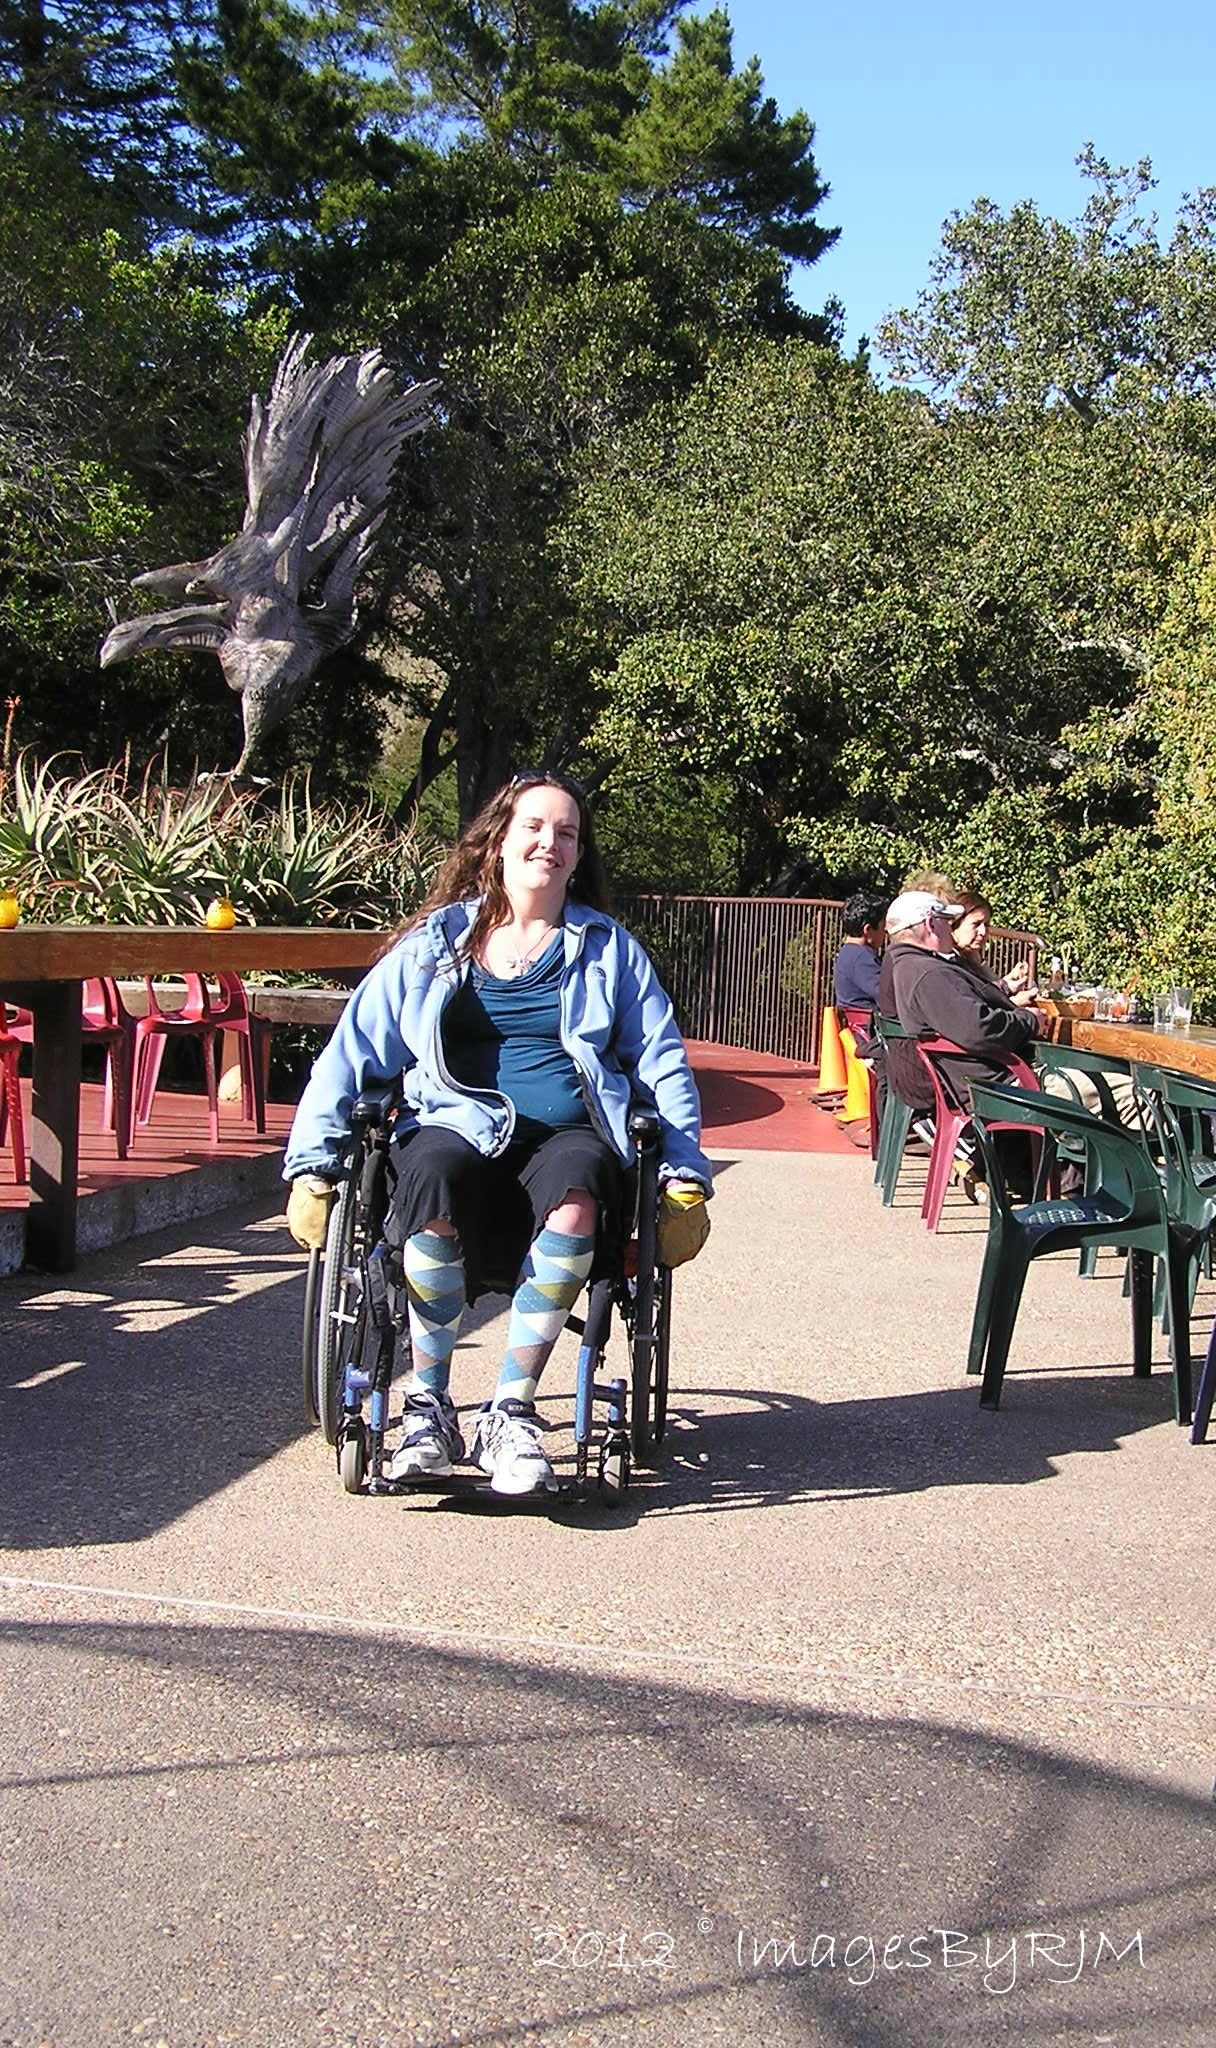 Woman in wheelchair on restaurant patio, with metal bird sculpture in background.